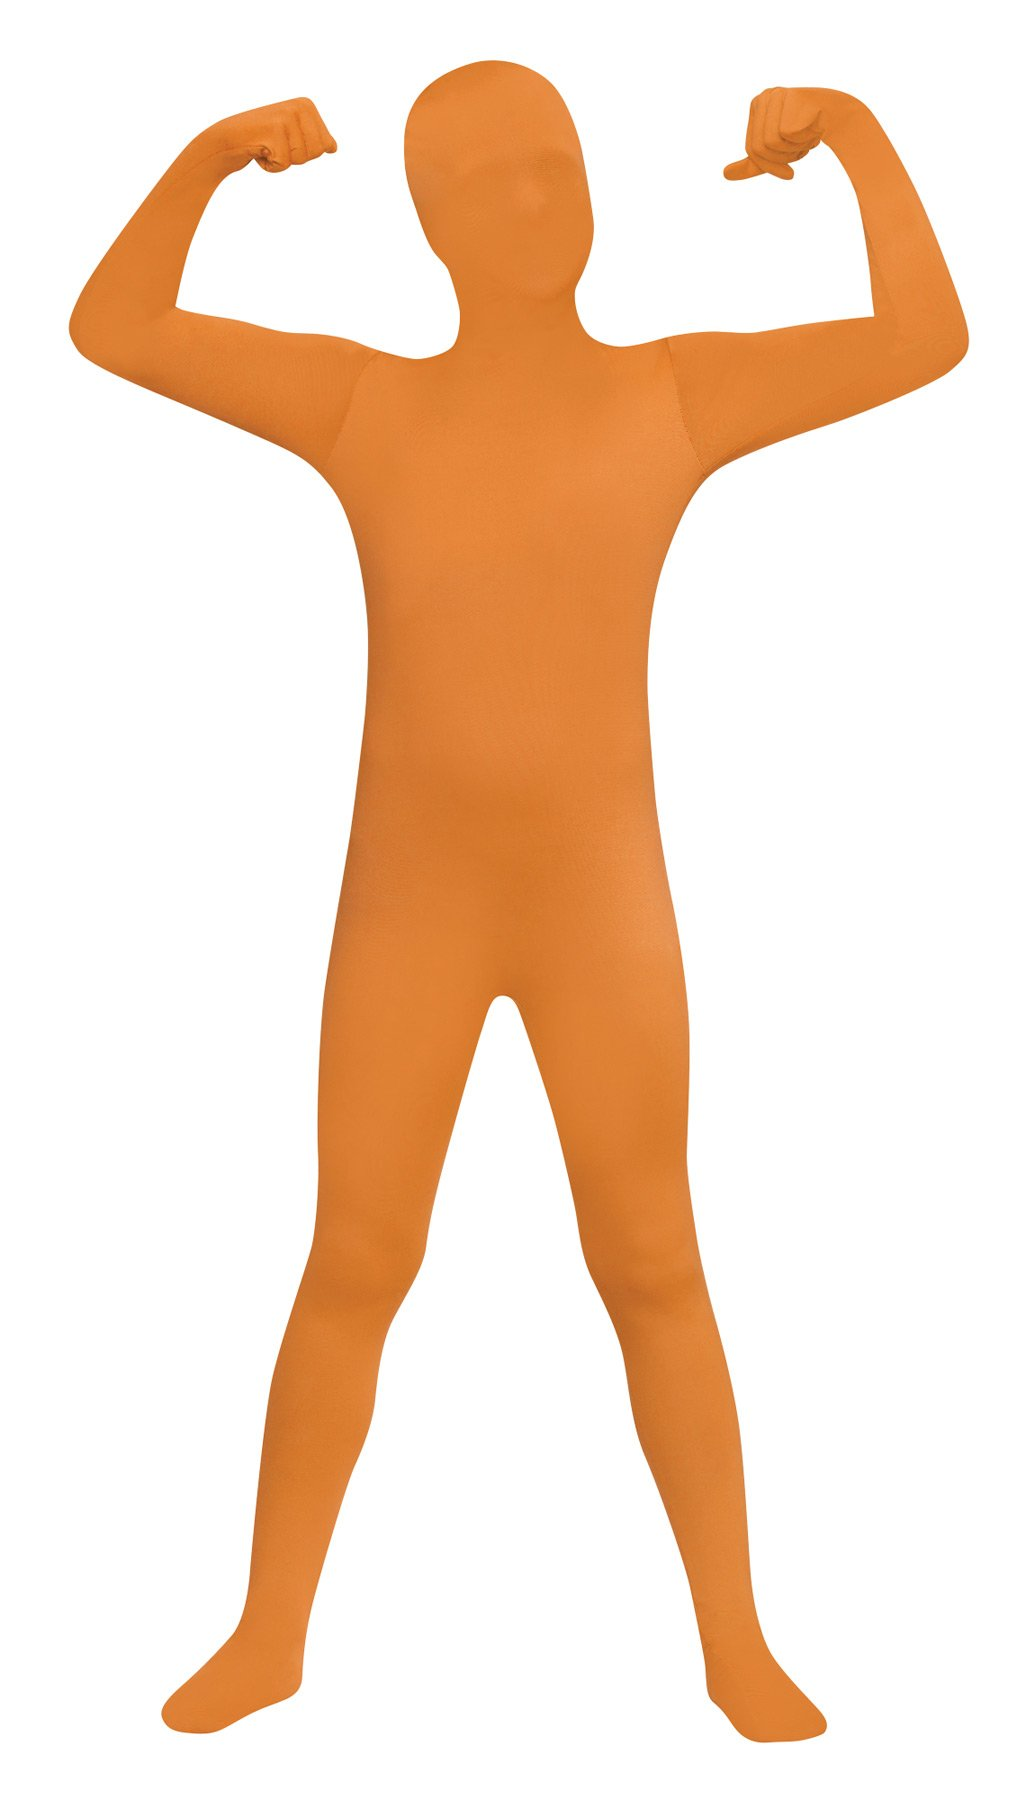 - 61f3i5HkOdL - Skin Suit Bodysuit Zentai Funny Theme Fancy Dress Child Halloween Costume, Orange, Child L (12-14)